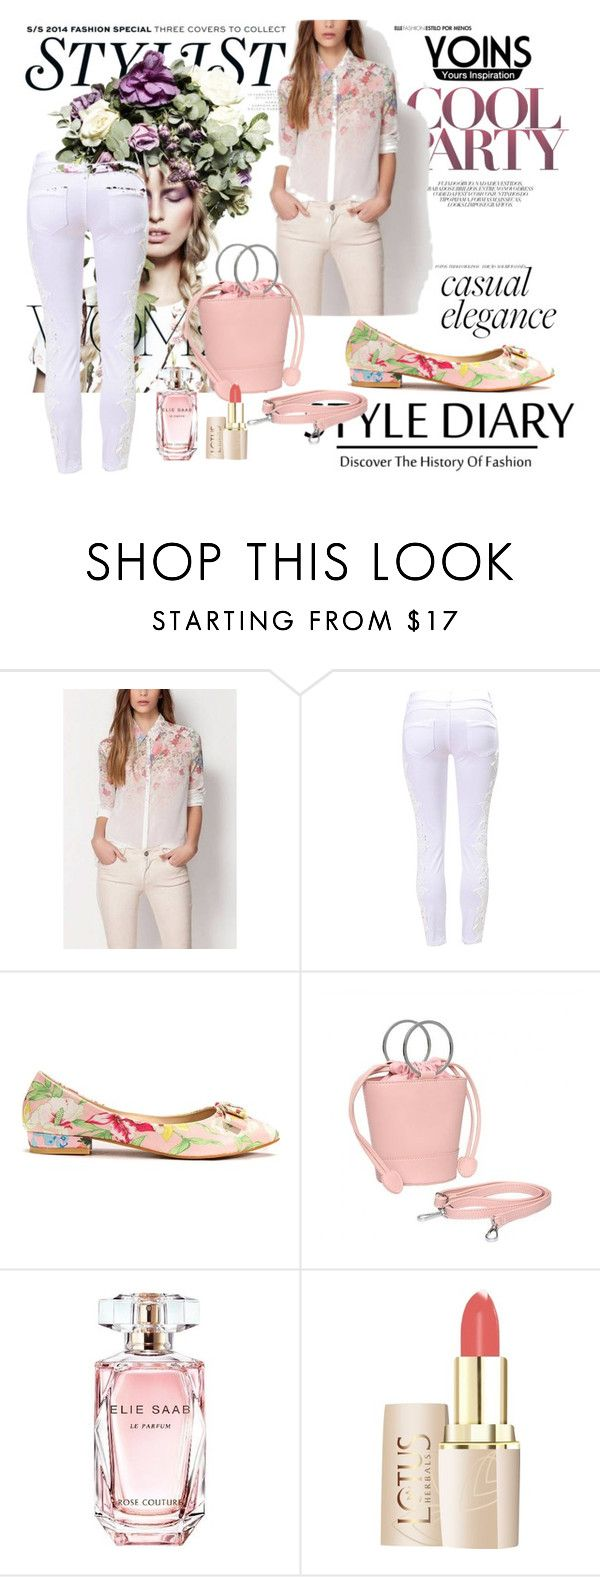 """""""Win this SHIRT or $20 voucher from yoins !"""" by lejlaaa1996 ❤ liked on Polyvore featuring KAROLINA, Elie Saab and yoins"""